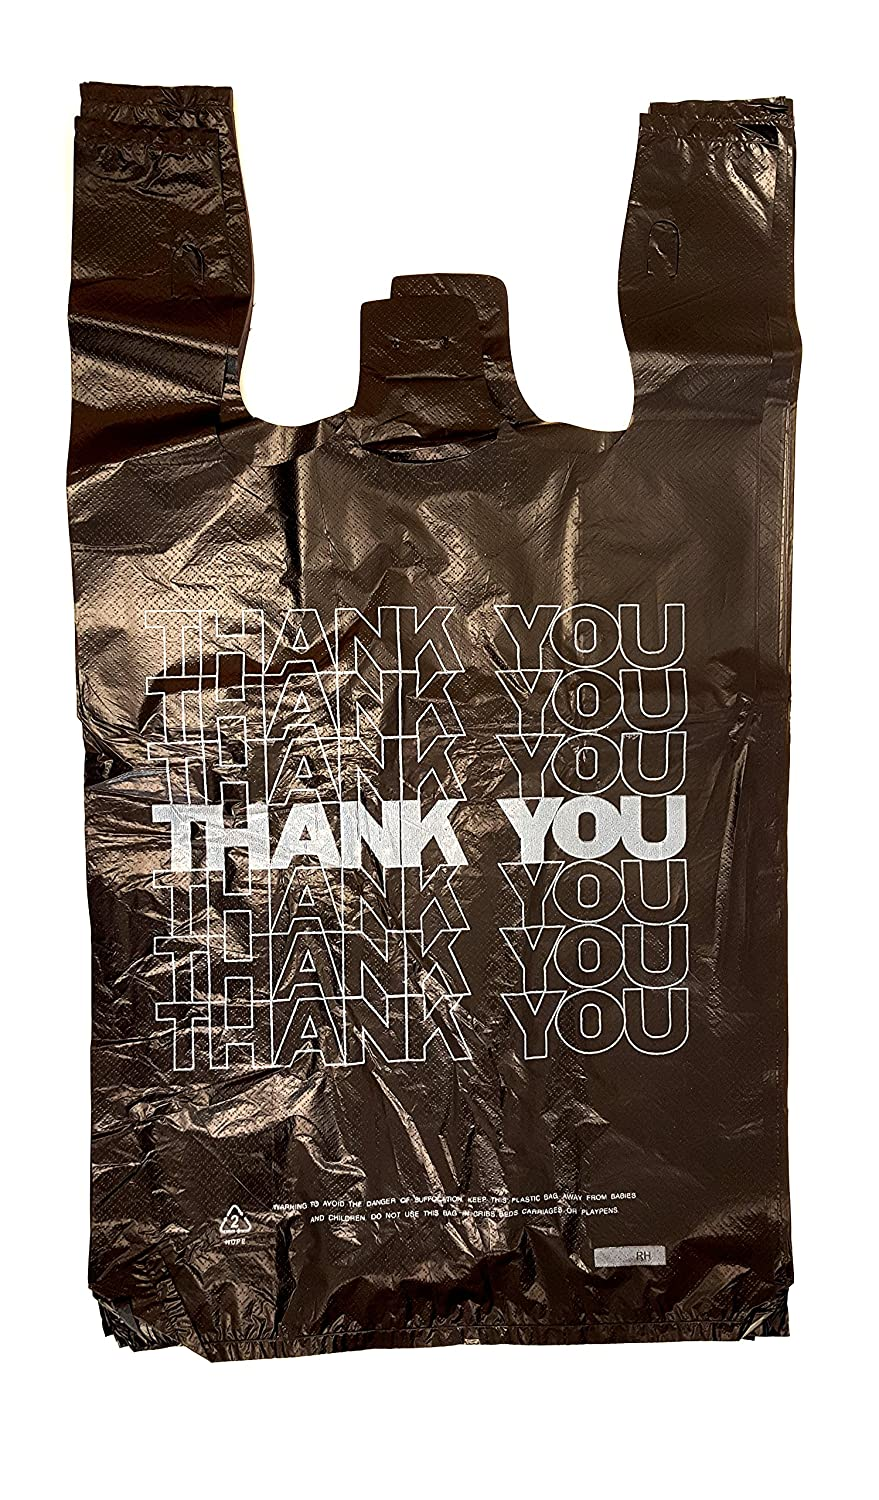 Black t shirt carryout bags - Amazon Com Plastic Bag Thank You T Shirt Carry Out Bags Black 20 X 11 X 6 18 Microns 400 Bags Per Case Kitchen Dining